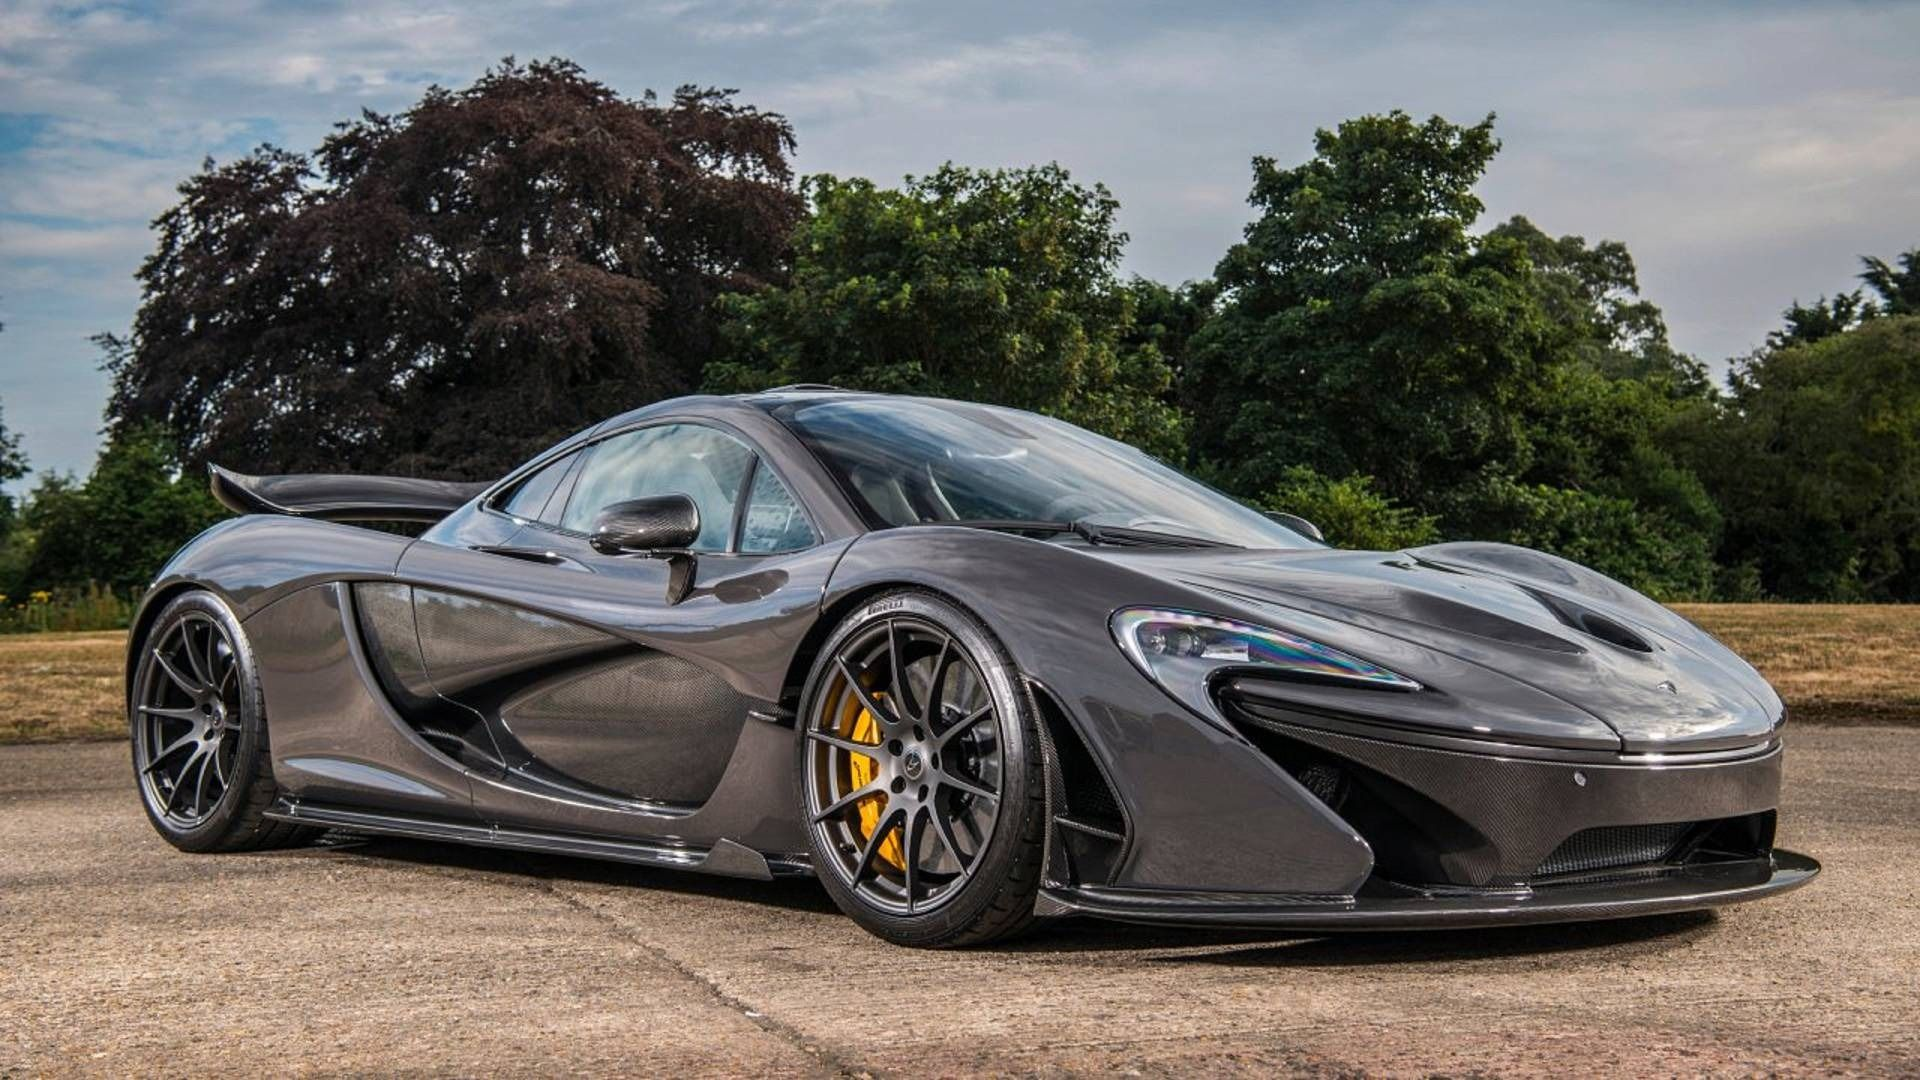 Jenson Button's McLaren P1 For Sale With Just 887 KM On The Clock